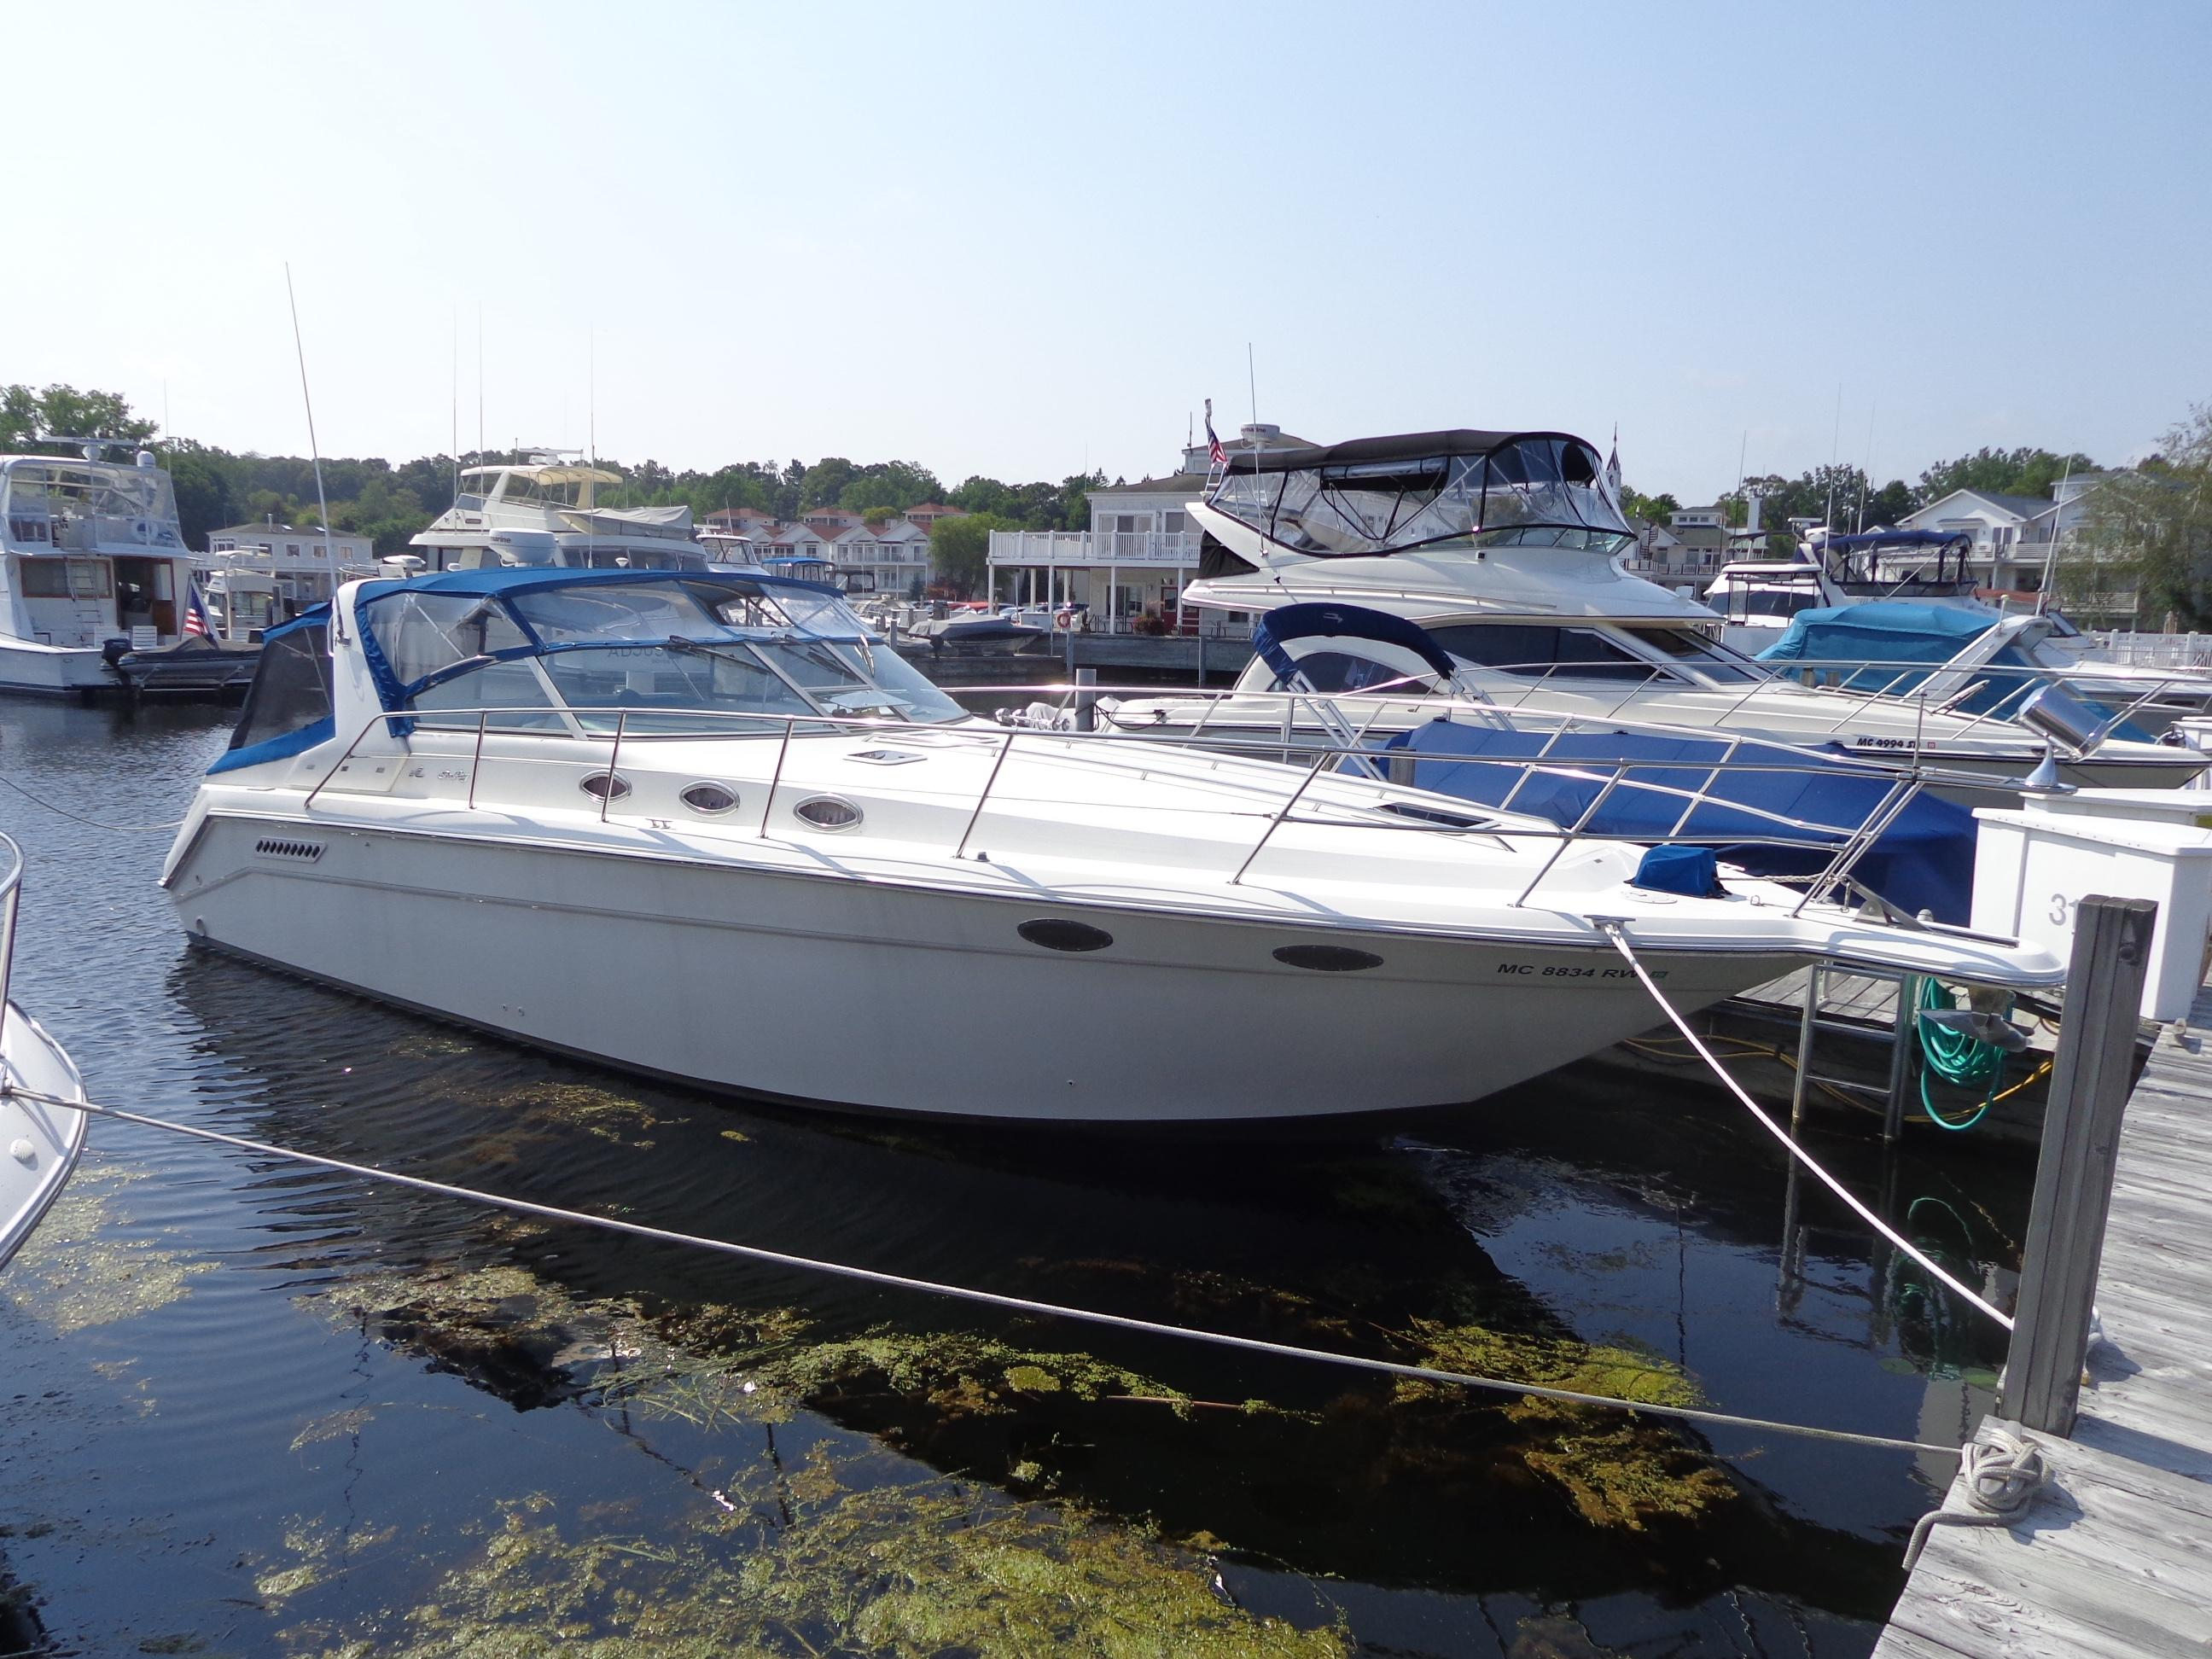 Boats for sale in Michigan, United States - www.yachtworld.com